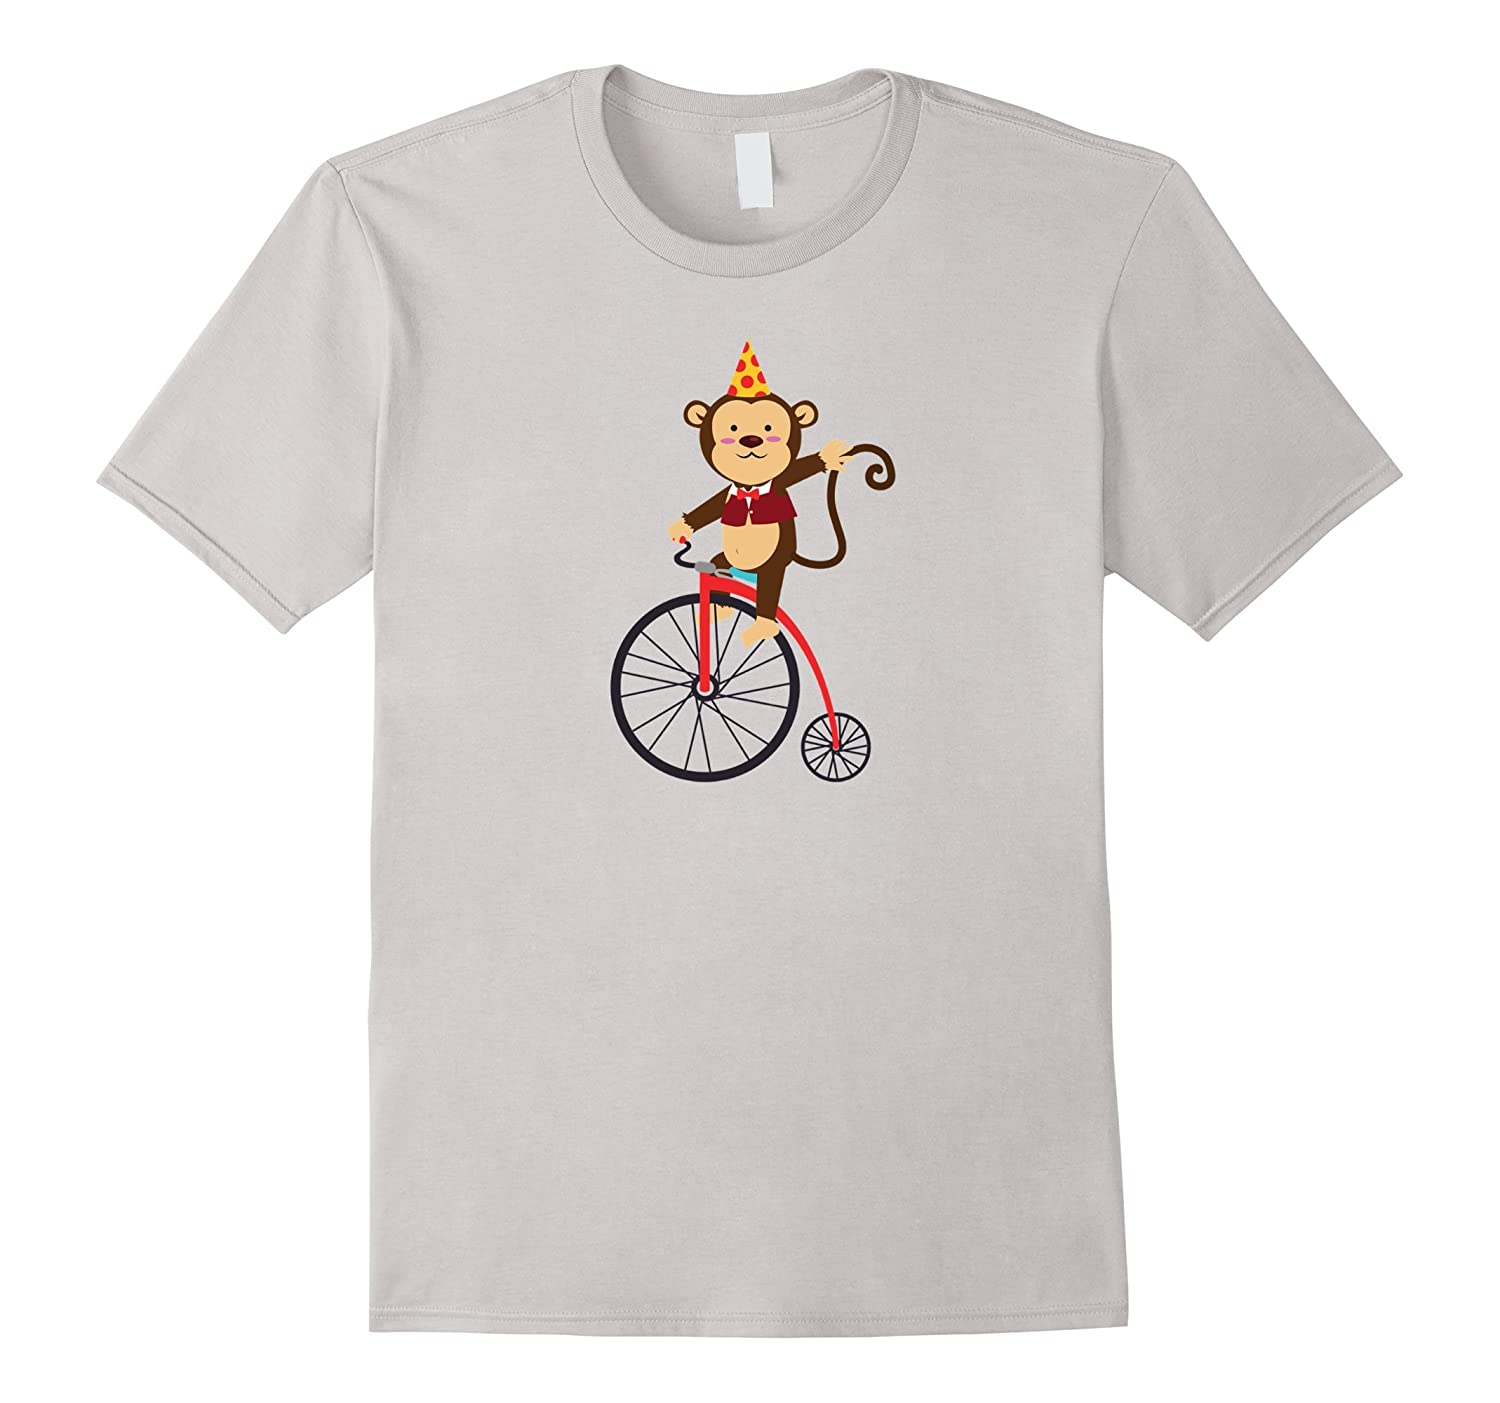 Cute Birthday Monkey Circus Shirt For Kids And Adults Gm